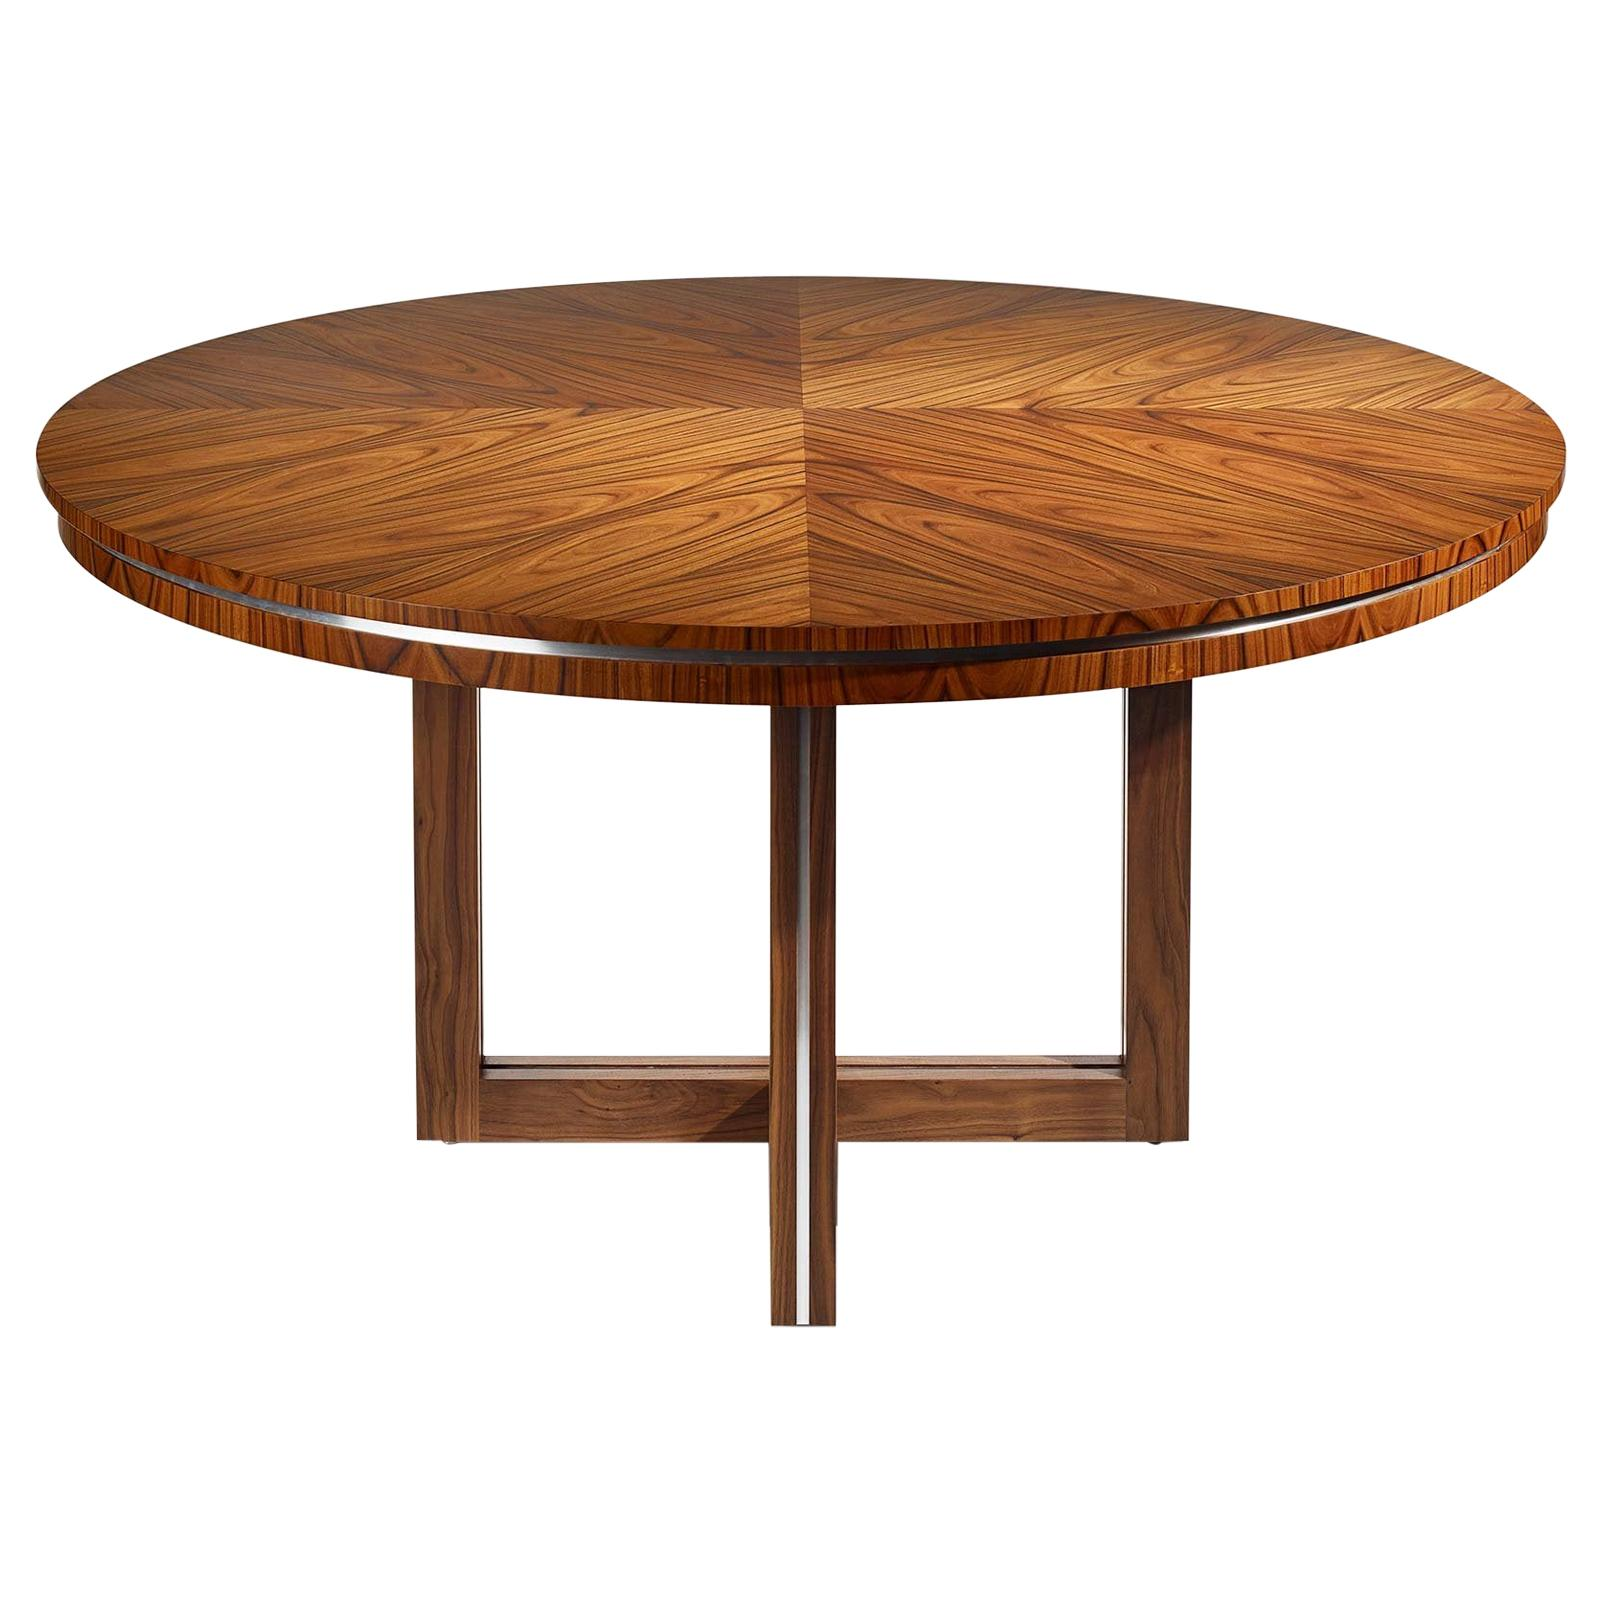 Linley Helix Circular Dining Table